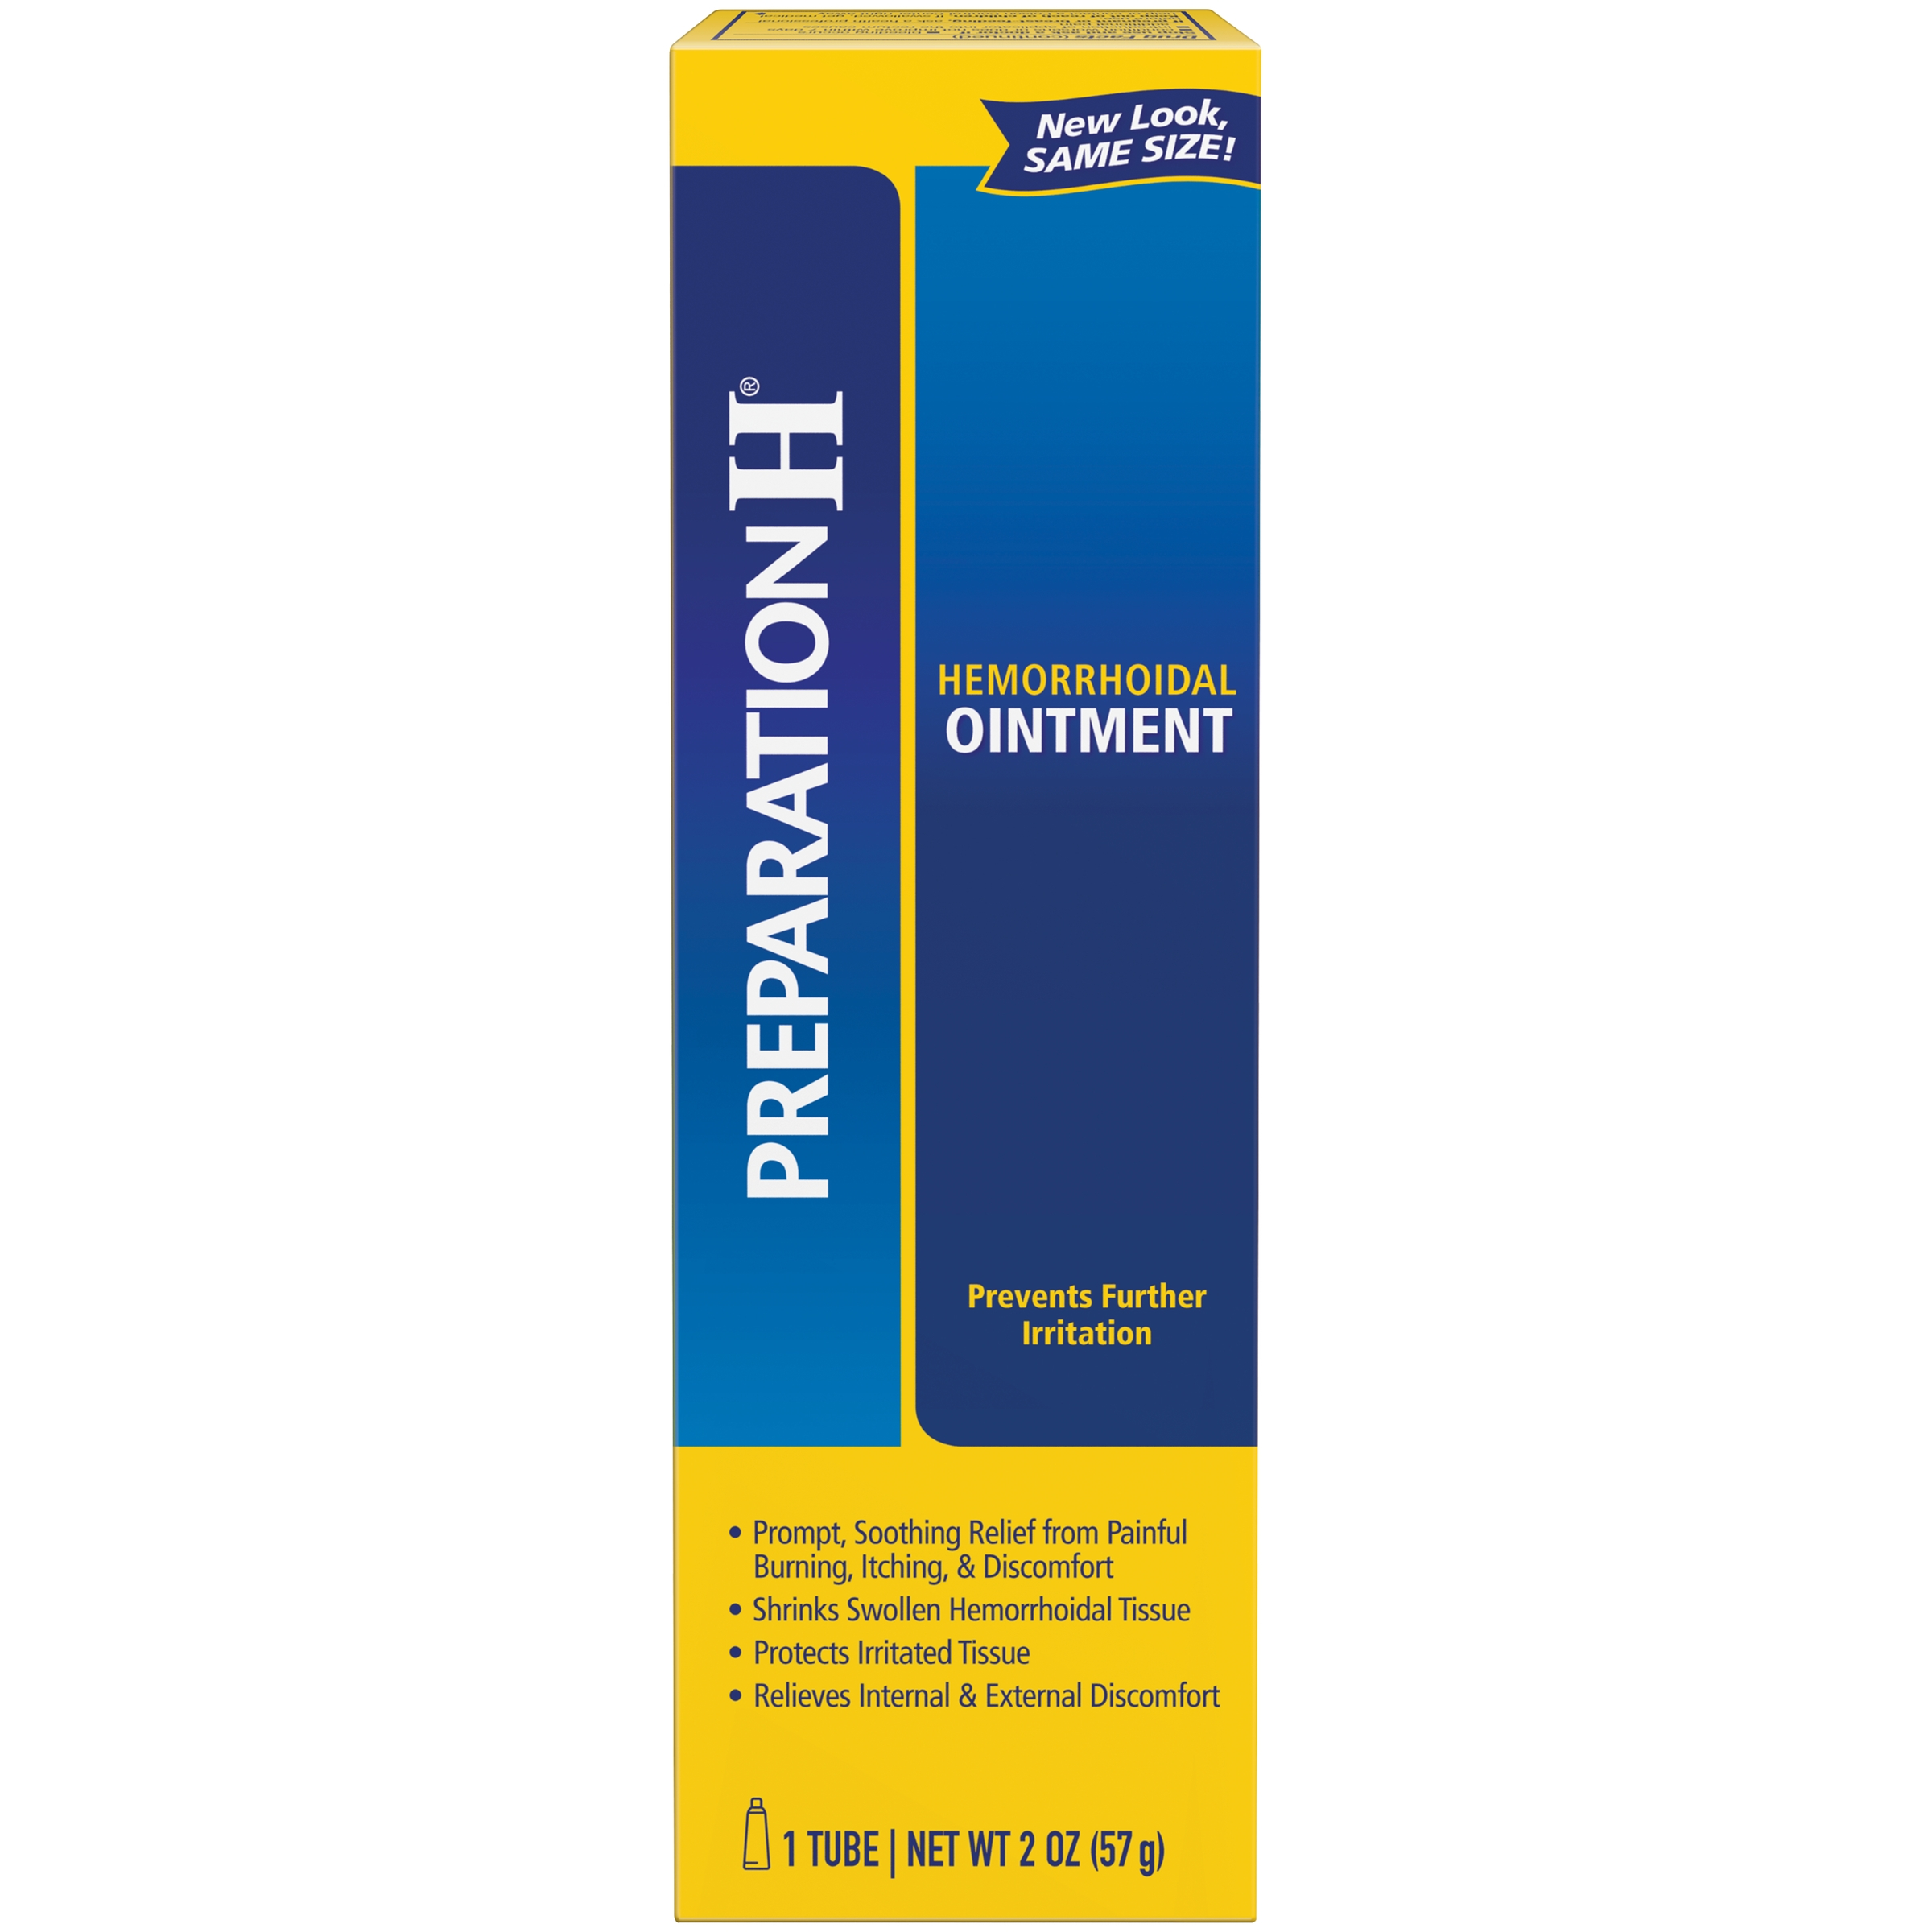 Preparation H Hemorrhoid Symptom Treatment Ointment, Itching, Burning and Discomfort Relief, Tube (2.0 Ounce)